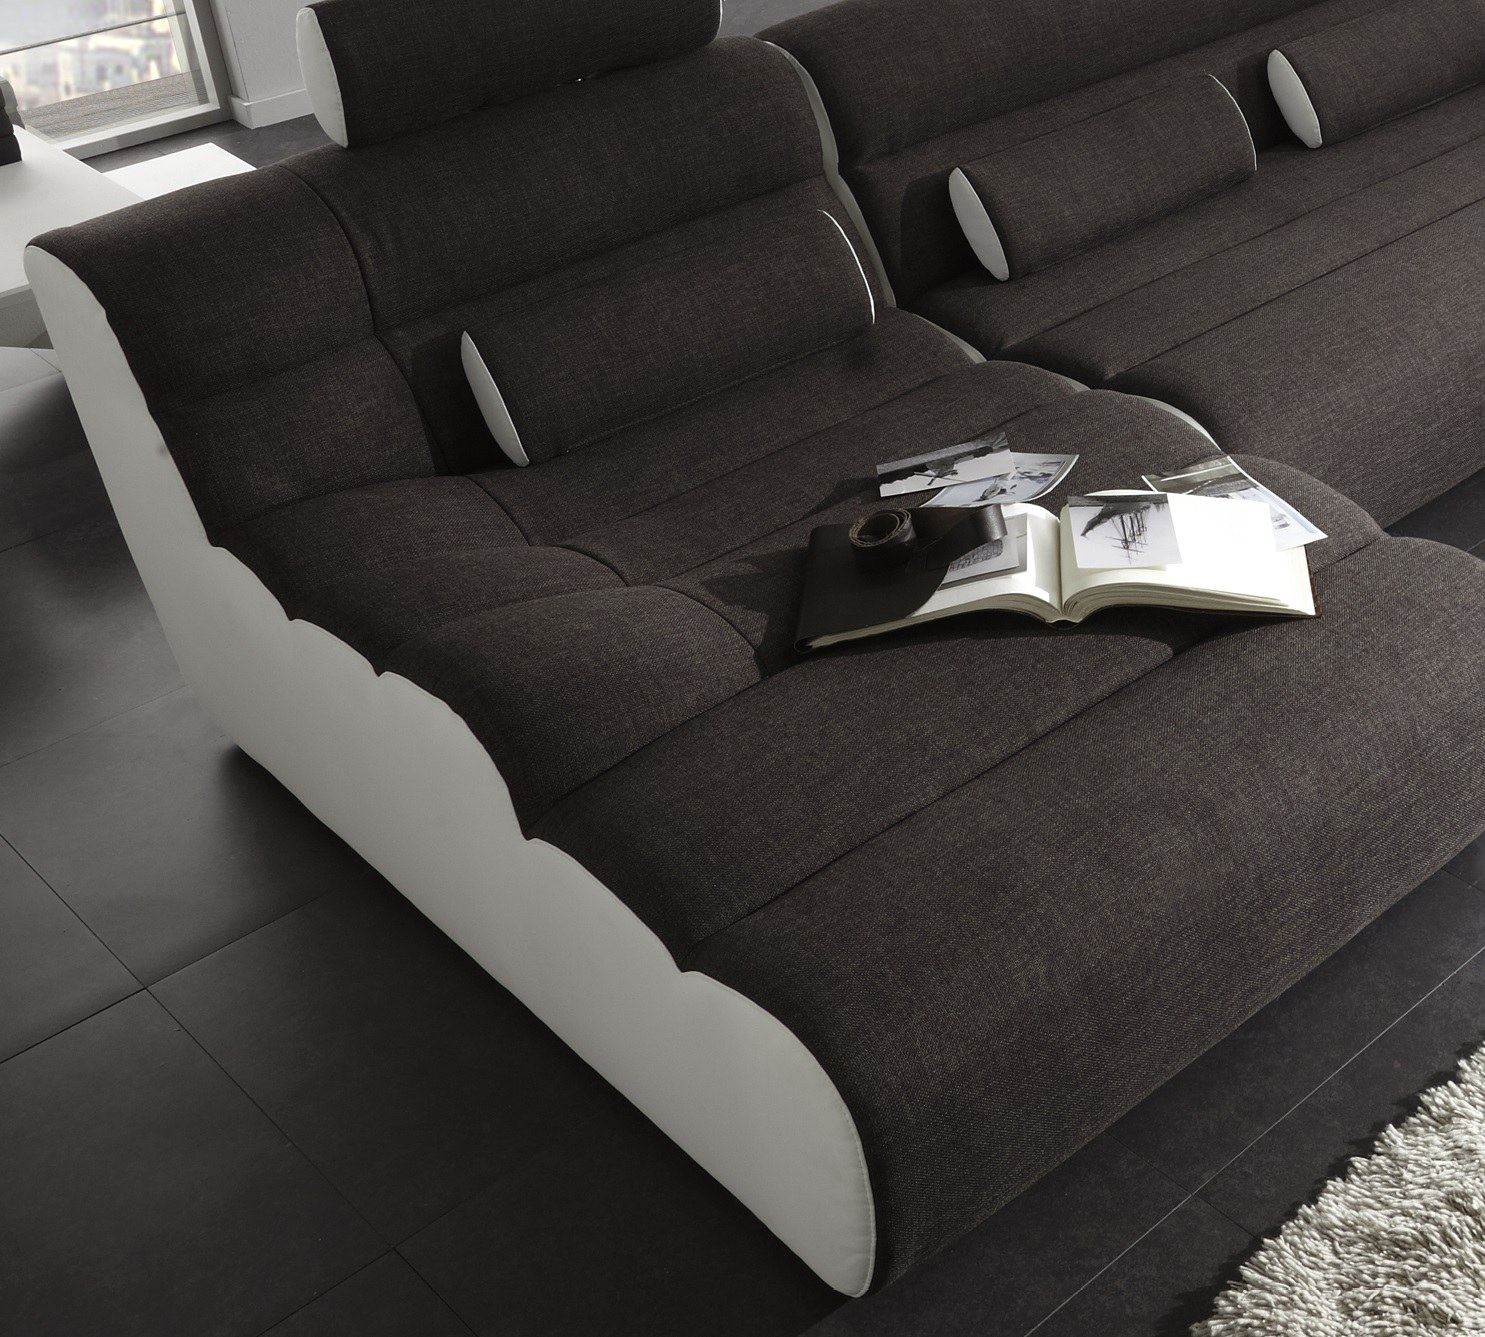 systemsofa ecksofa elements 5 create your own style kaufen bei. Black Bedroom Furniture Sets. Home Design Ideas